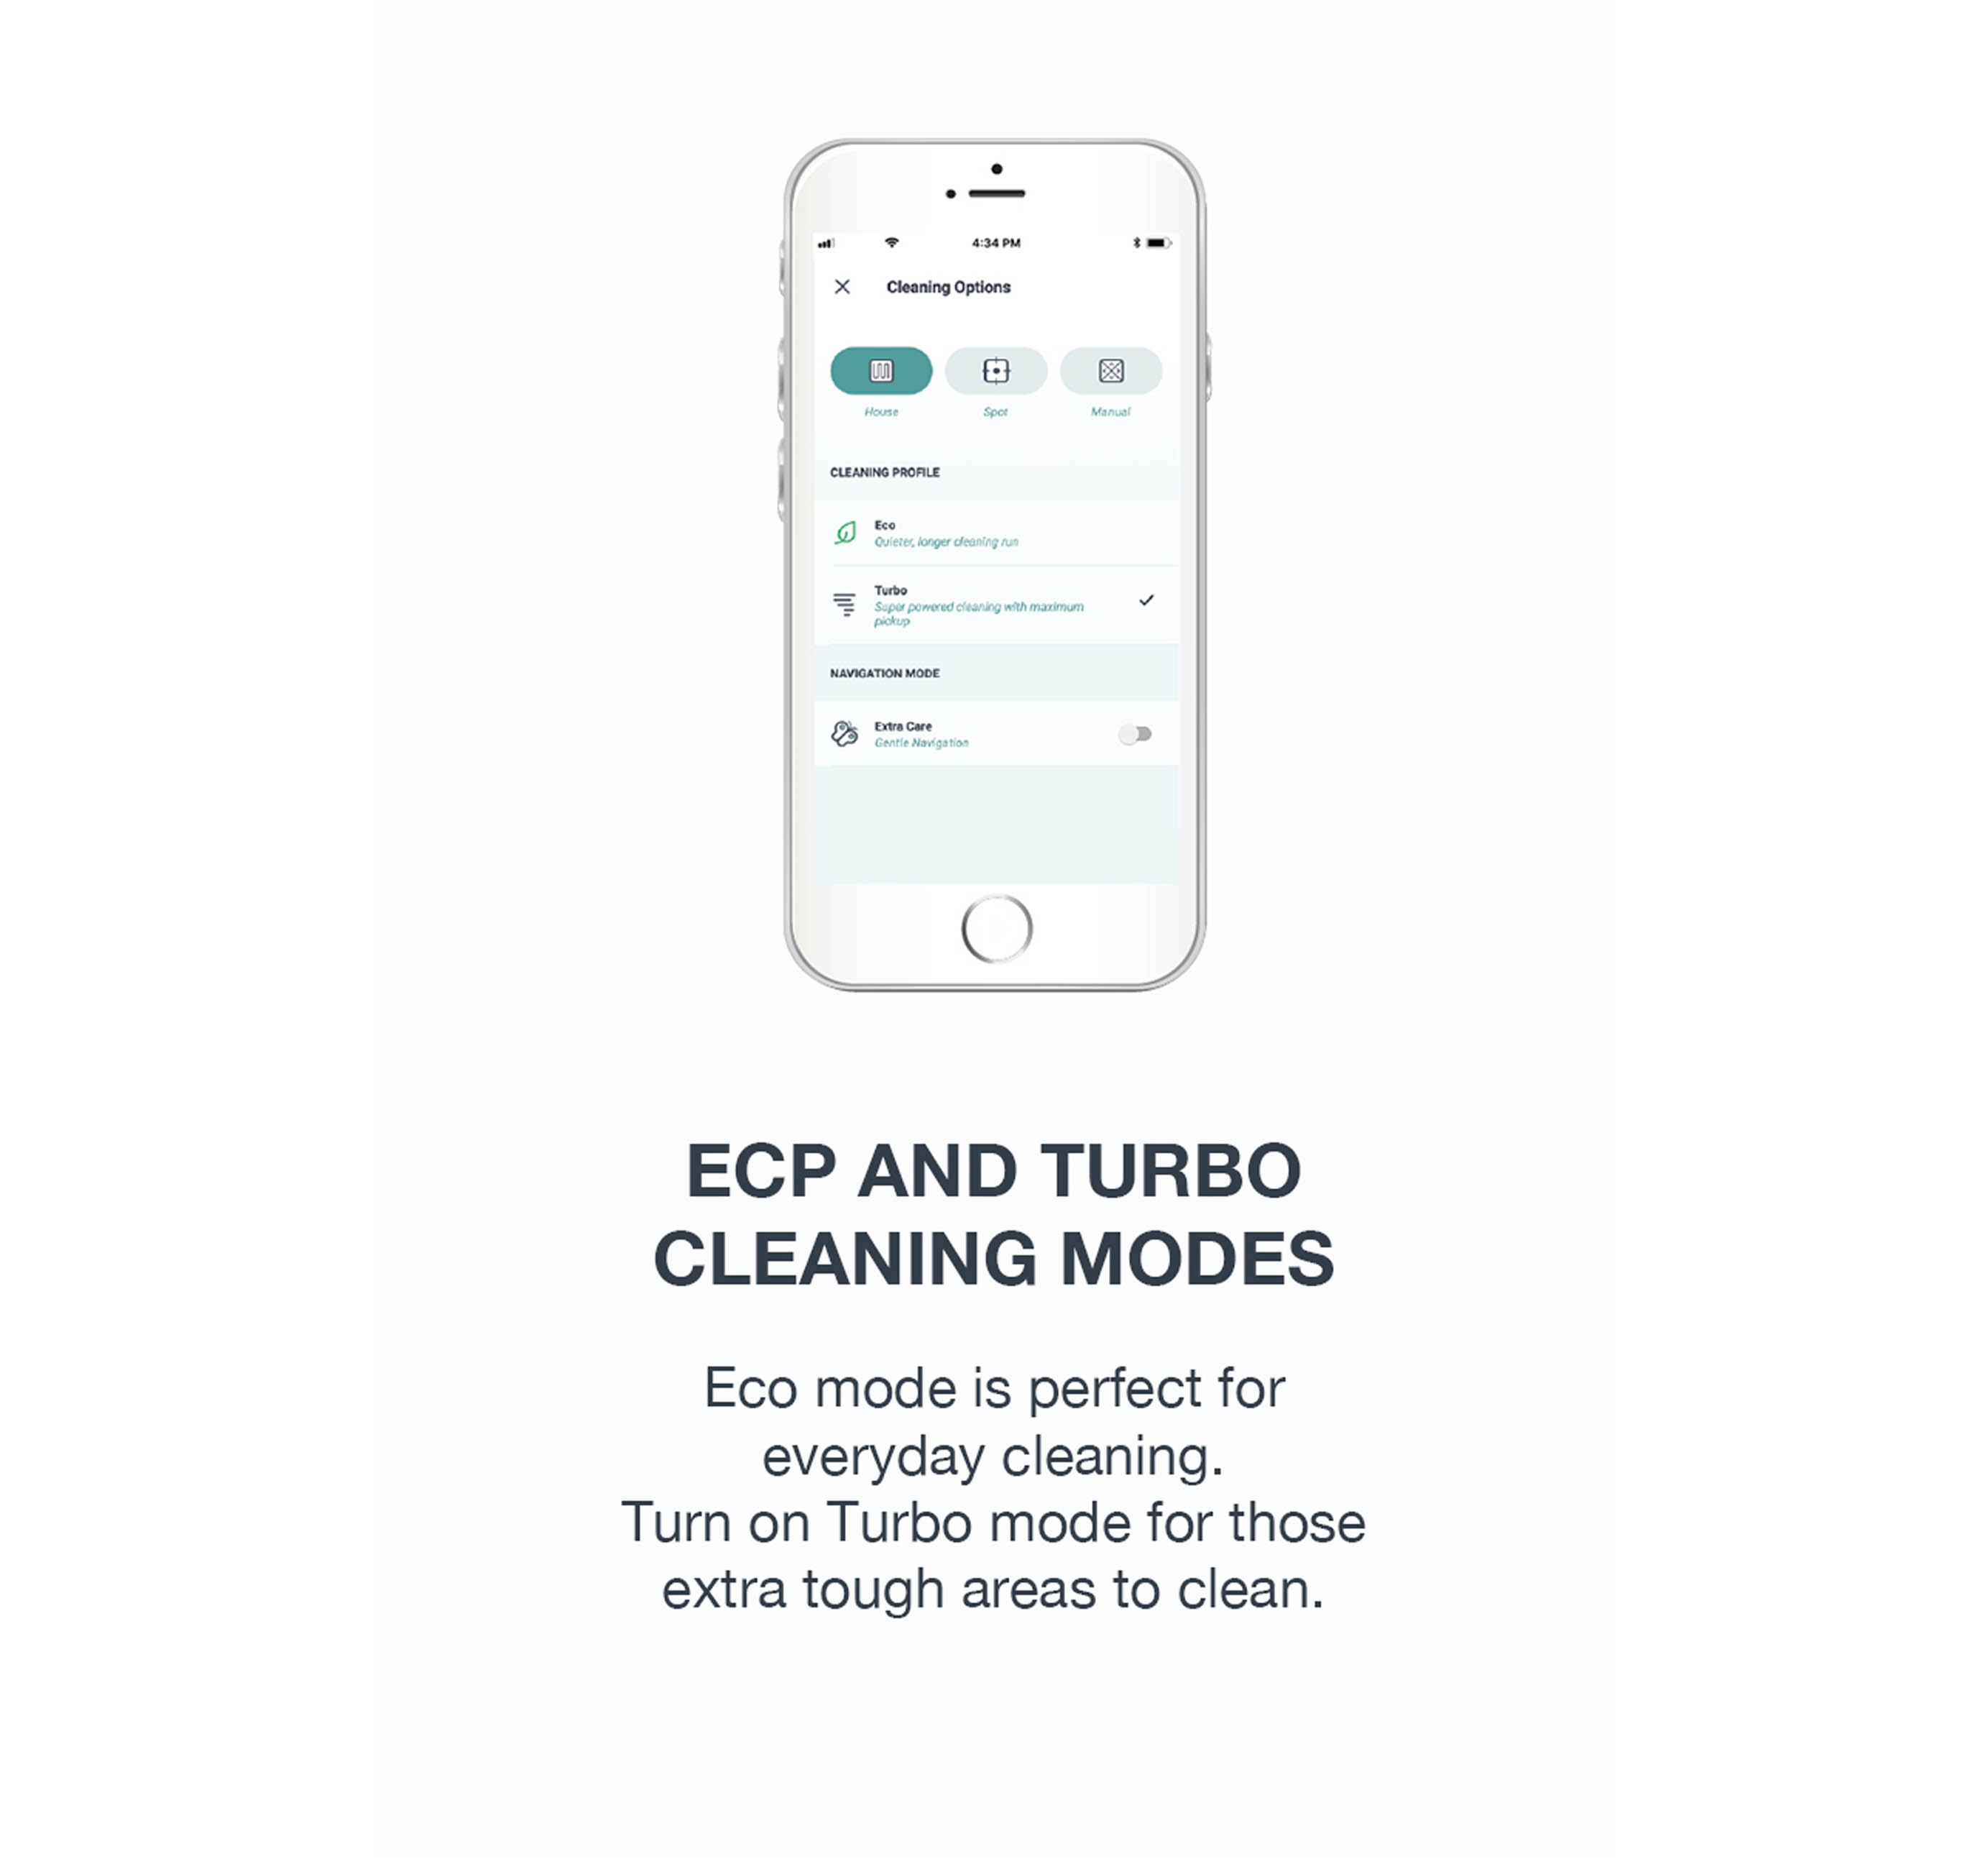 Customize your cleaning with Eco and Turbo Modes.